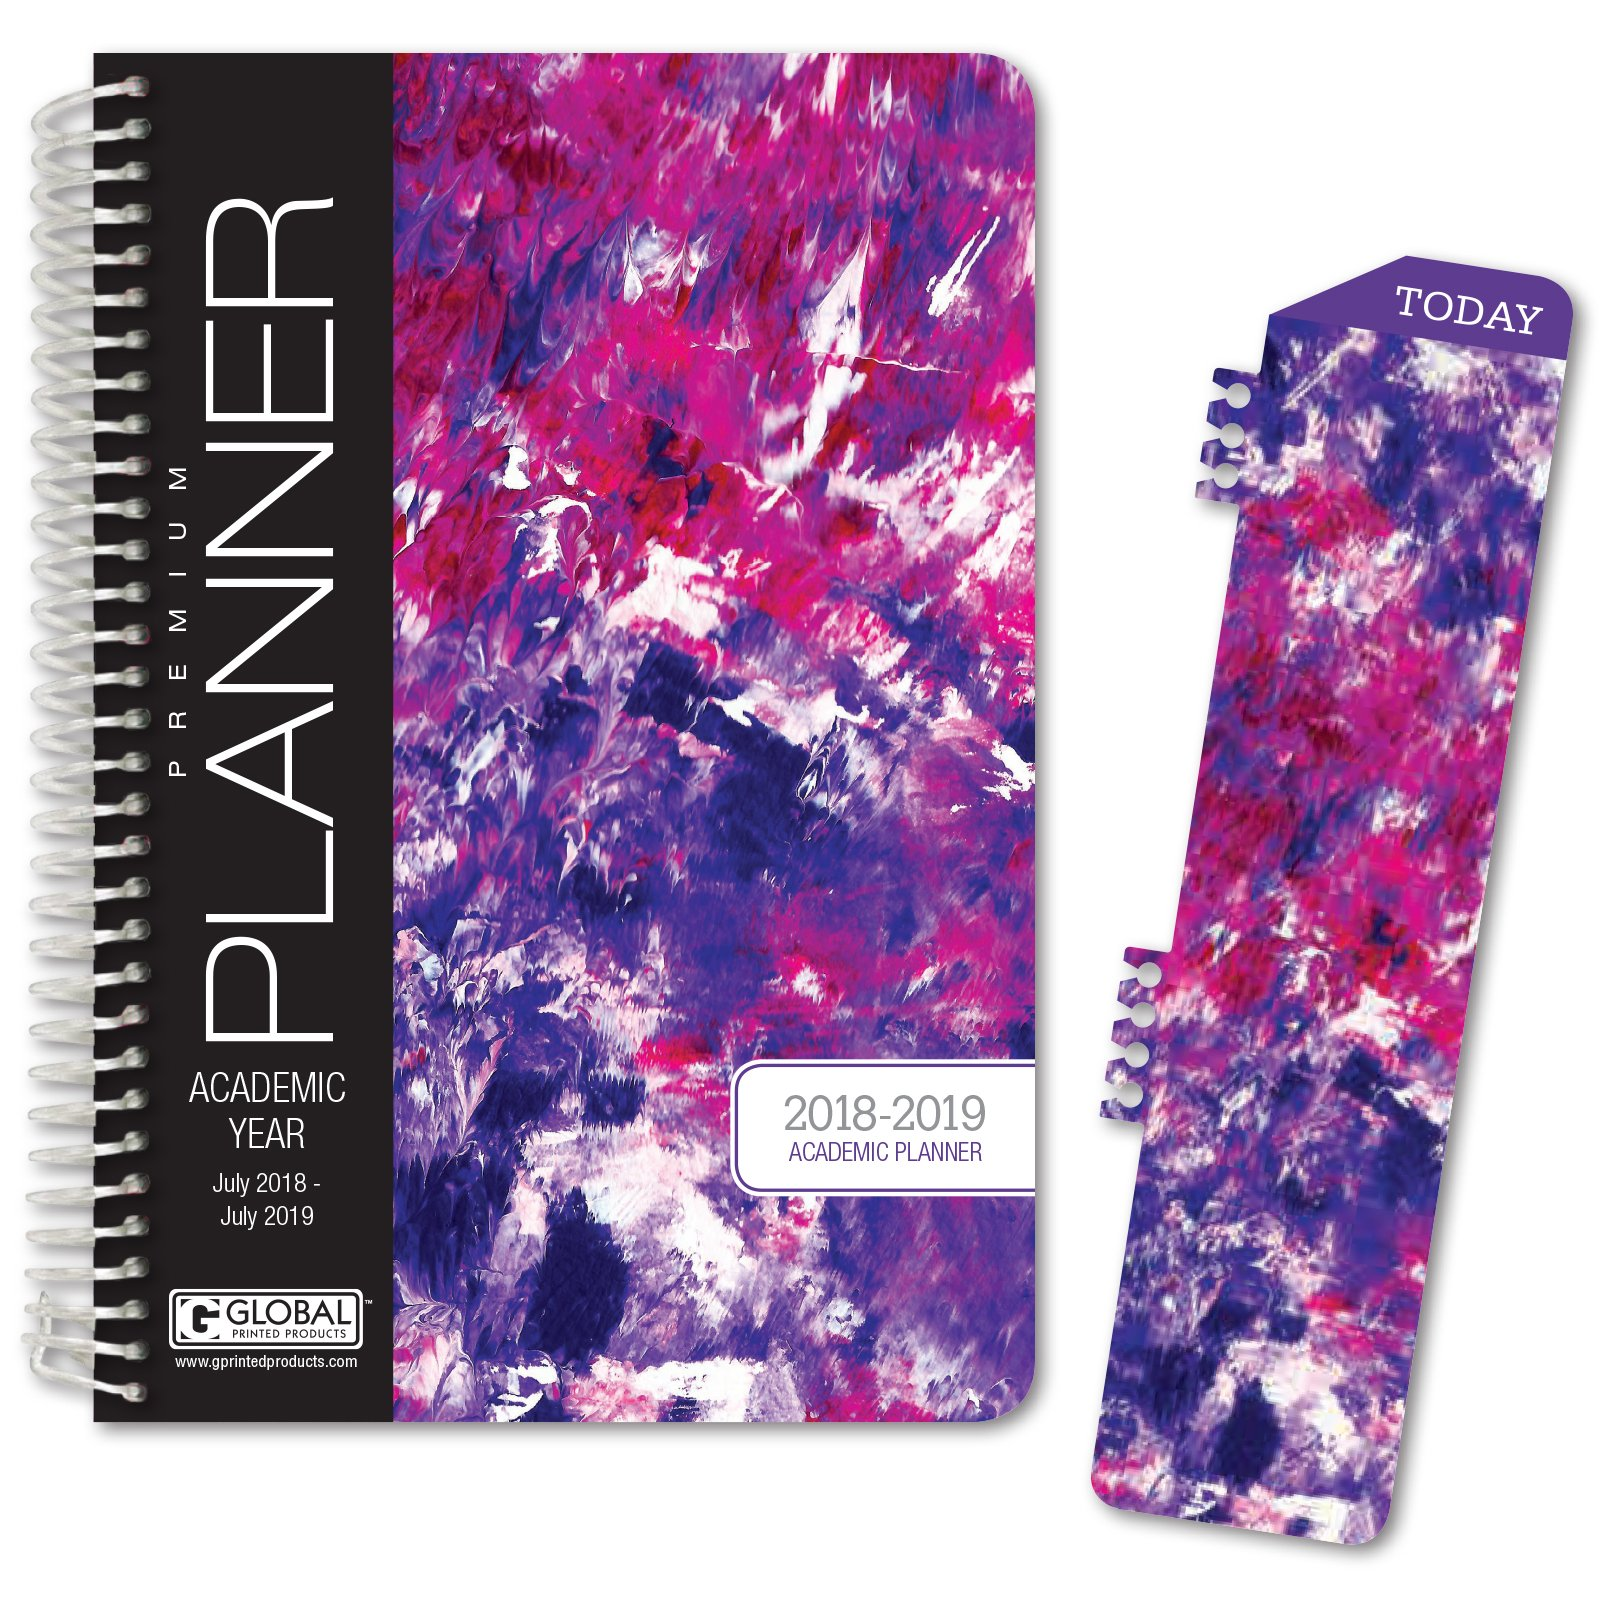 HARDCOVER Academic Year Planner 2018-2019 - 5.5''x8'' Daily Planner / Weekly Planner / Monthly Planner / Yearly Agenda. Bonus BOOKMARK (Purple Art)